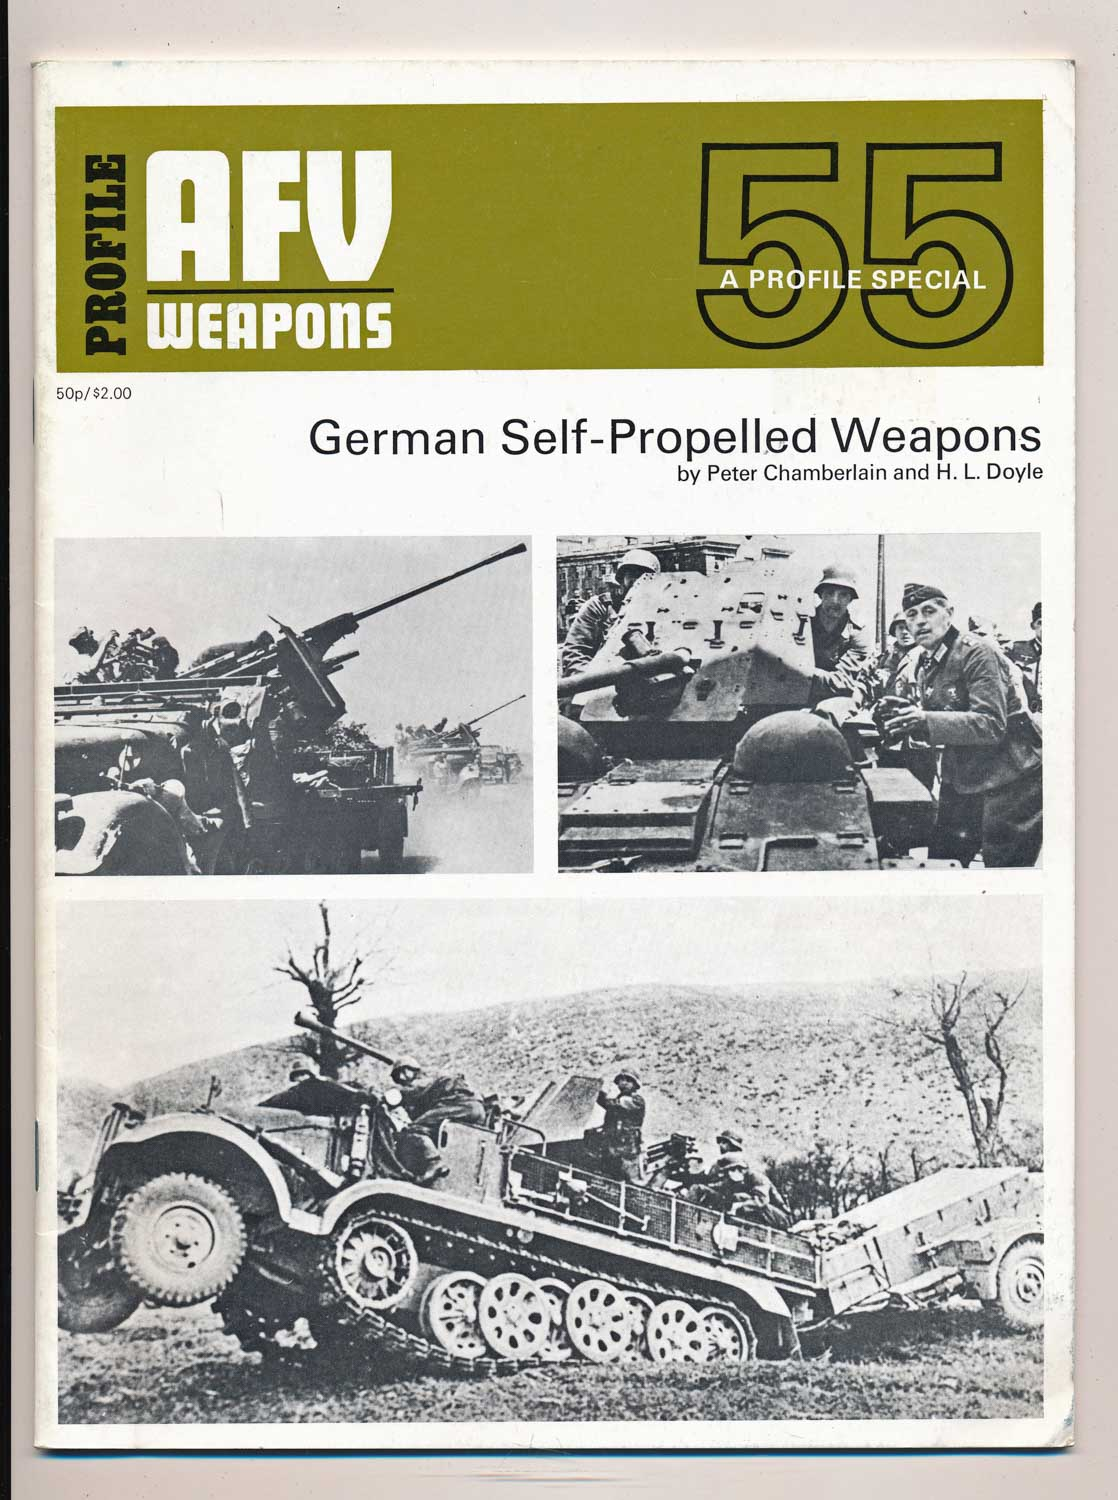 German Self-Propelled Weapons. A Profile Special.